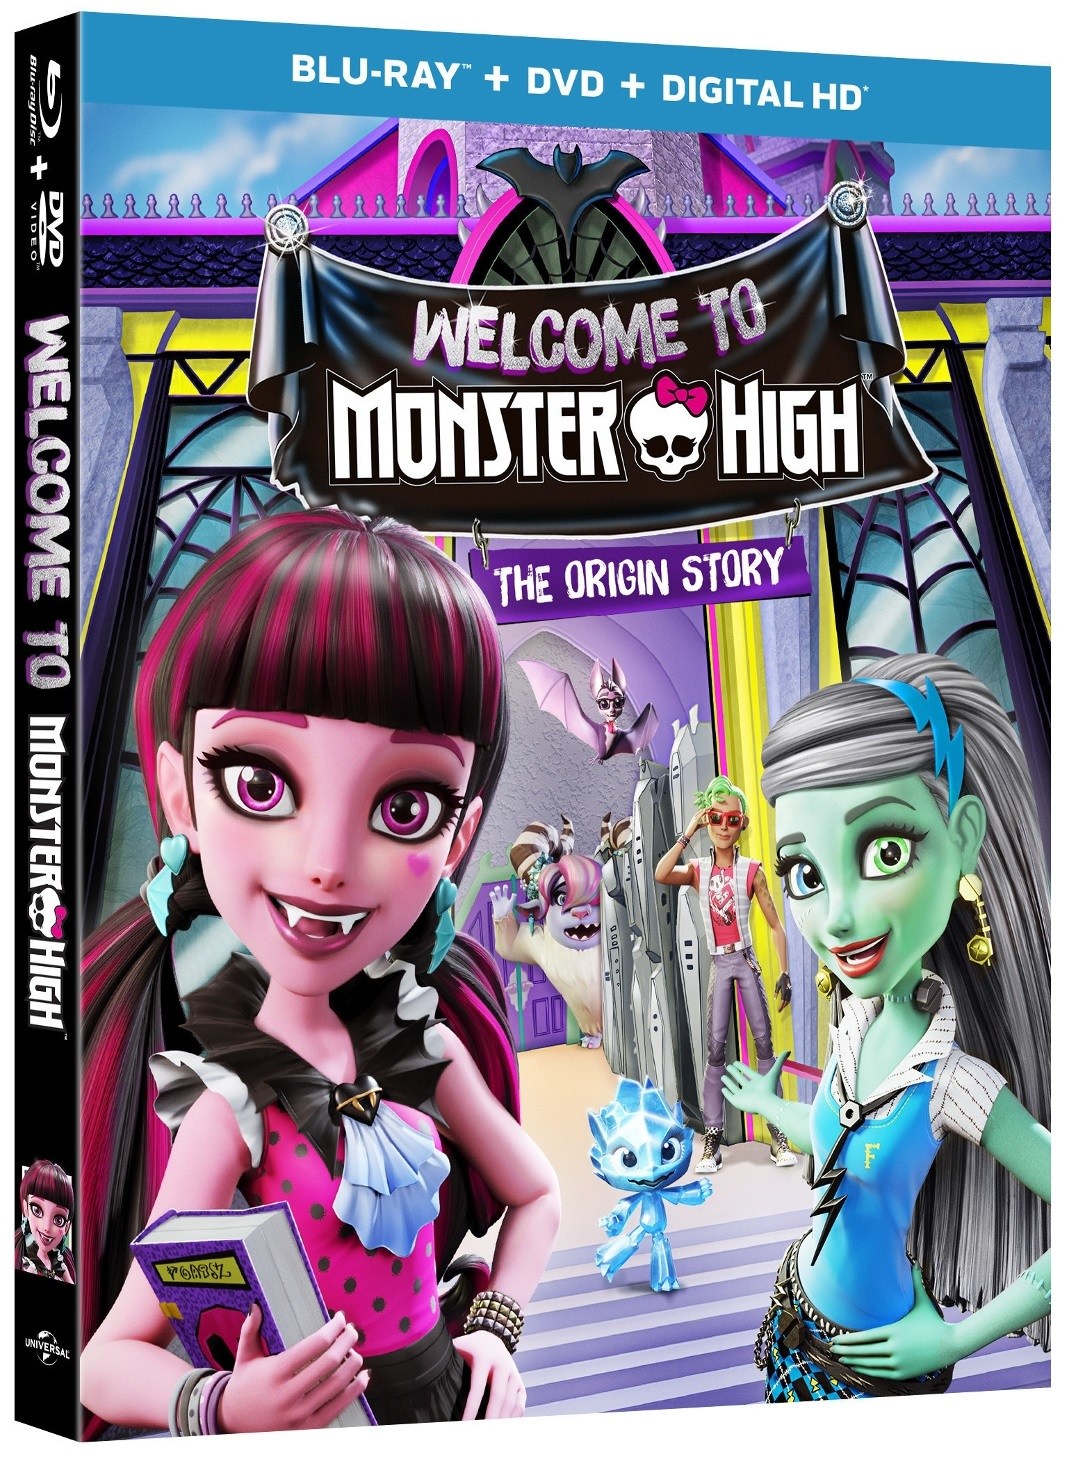 WELCOME TO MONSTER HIGH THE ORIGIN STORY Blu-ray